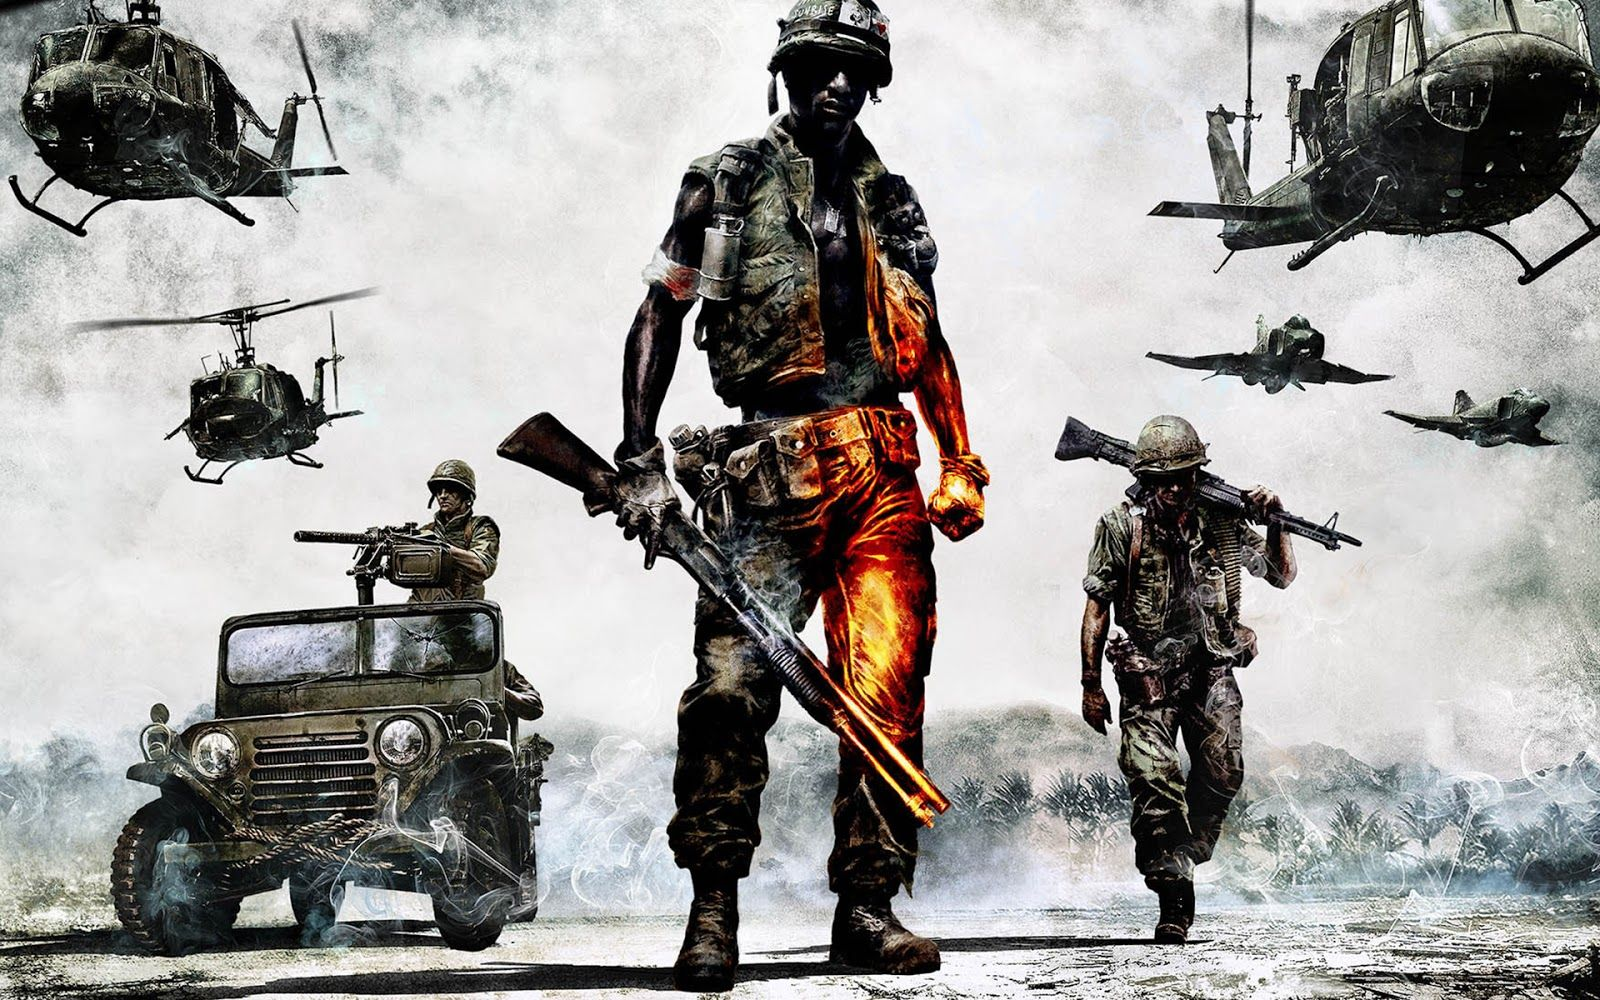 Army Wallpapers Free Download P Indian Military Hd Desktop Images Army Wallpaper Military Wallpaper Battlefield Bad Company